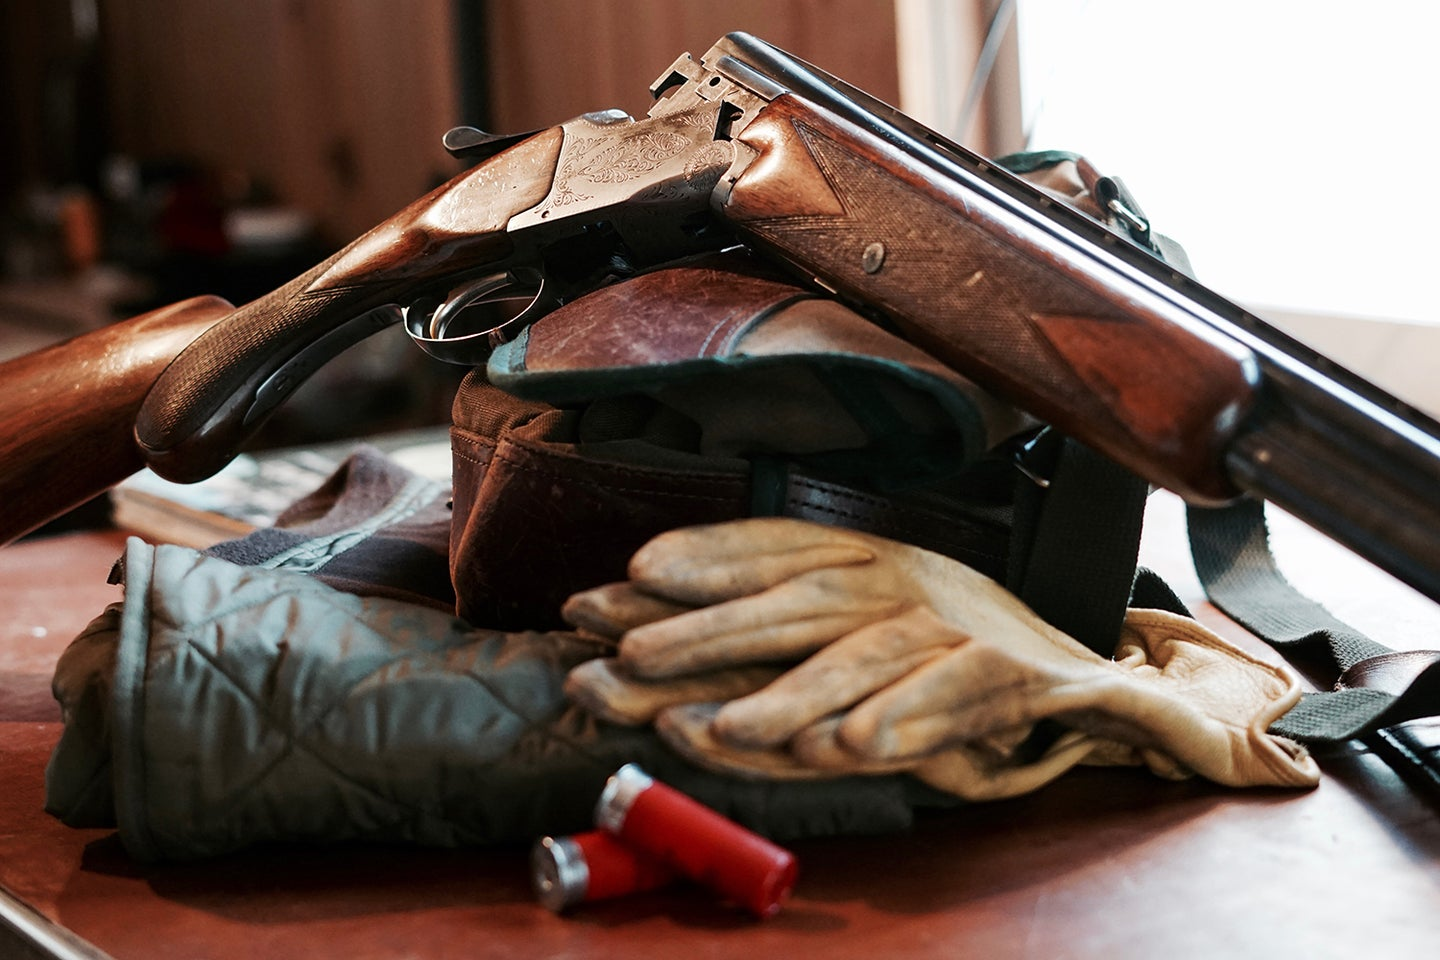 A Browning shotgun and hunting gear on a table.